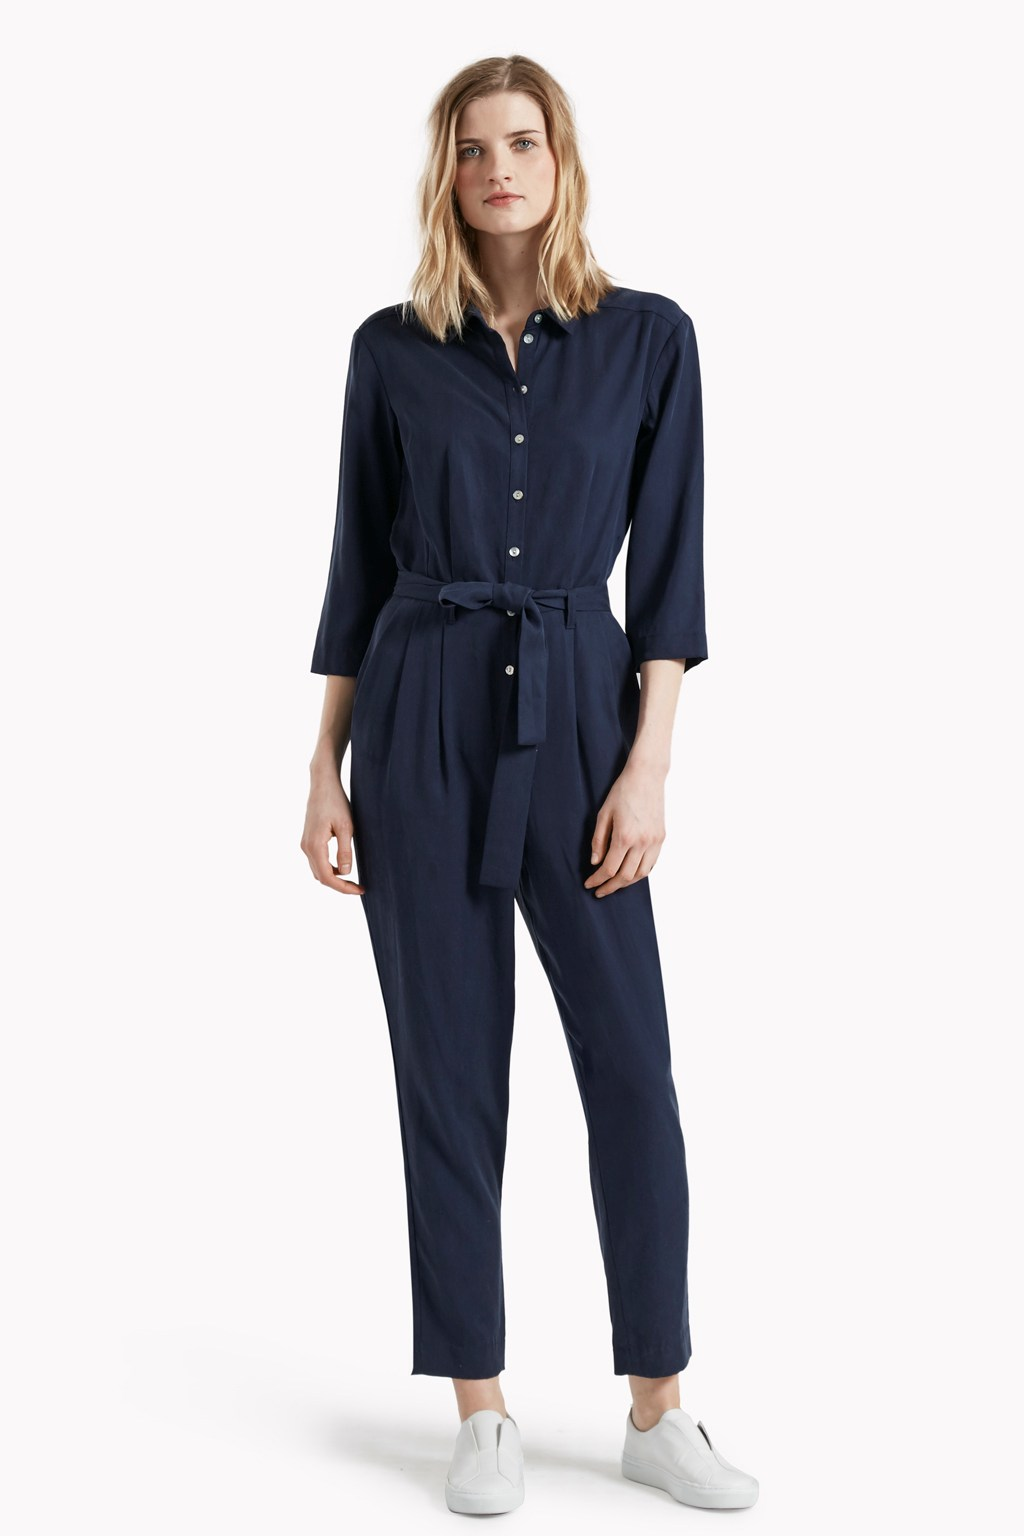 Off-Duty Jumpsuit - Timed Out Tencel Boiler Suit